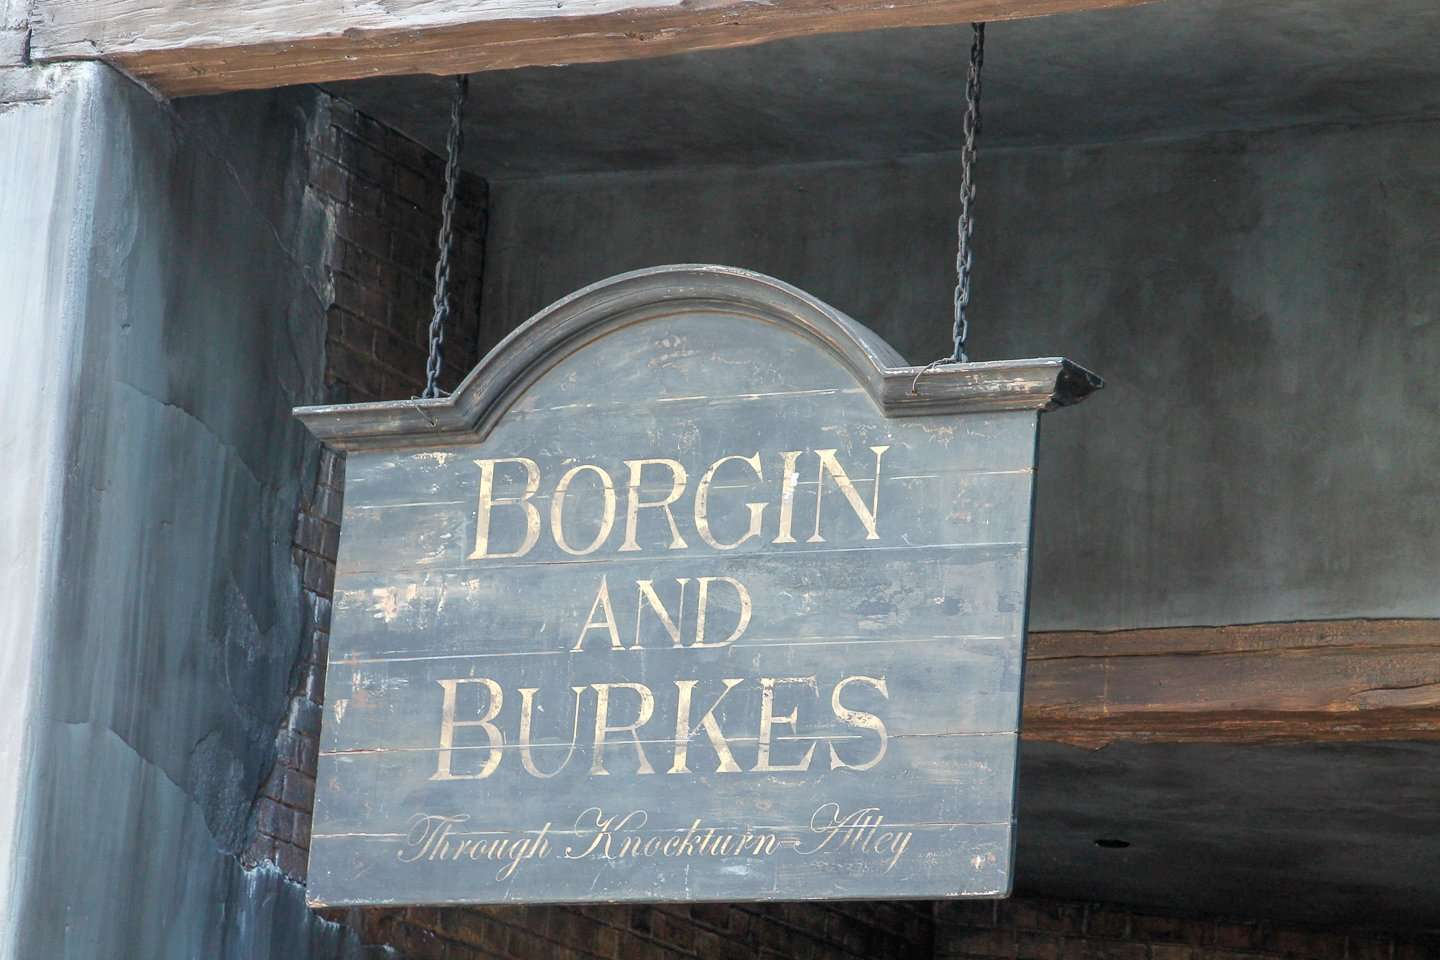 Borgin and Burkes at Wizarding World of Harry Potter